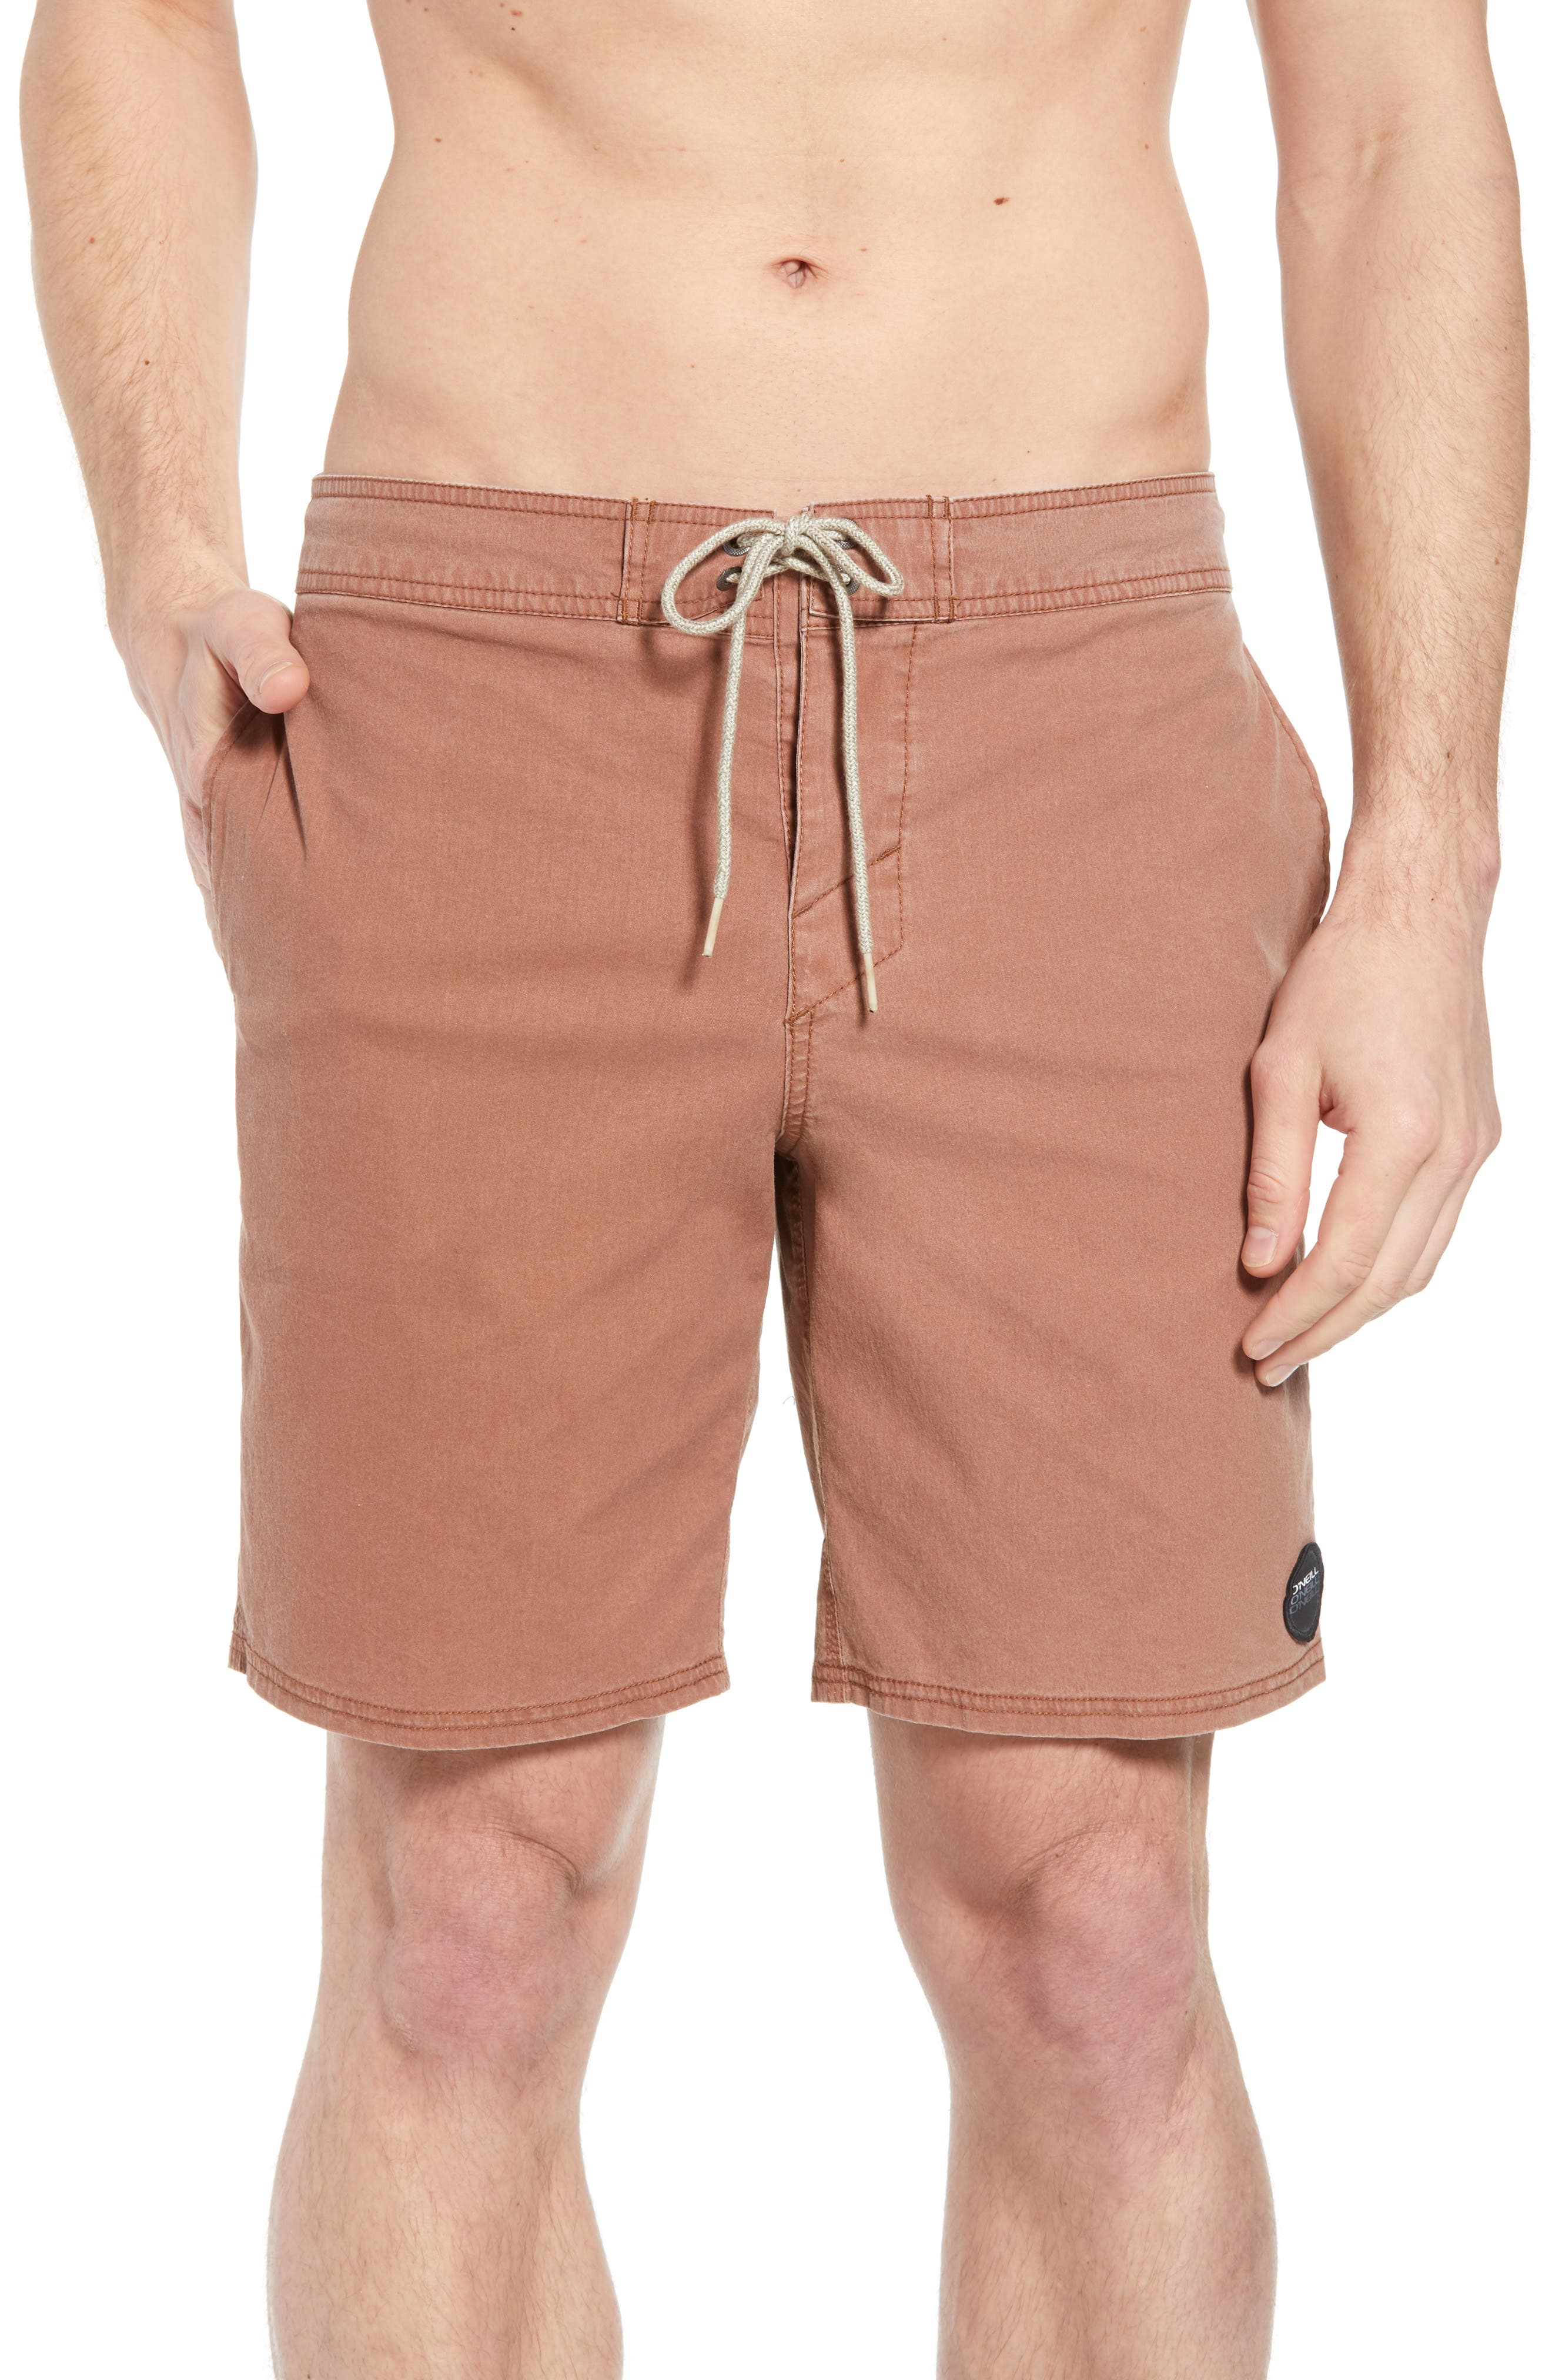 Faded Cruzer Board Shorts,                             Main thumbnail 1, color,                             218